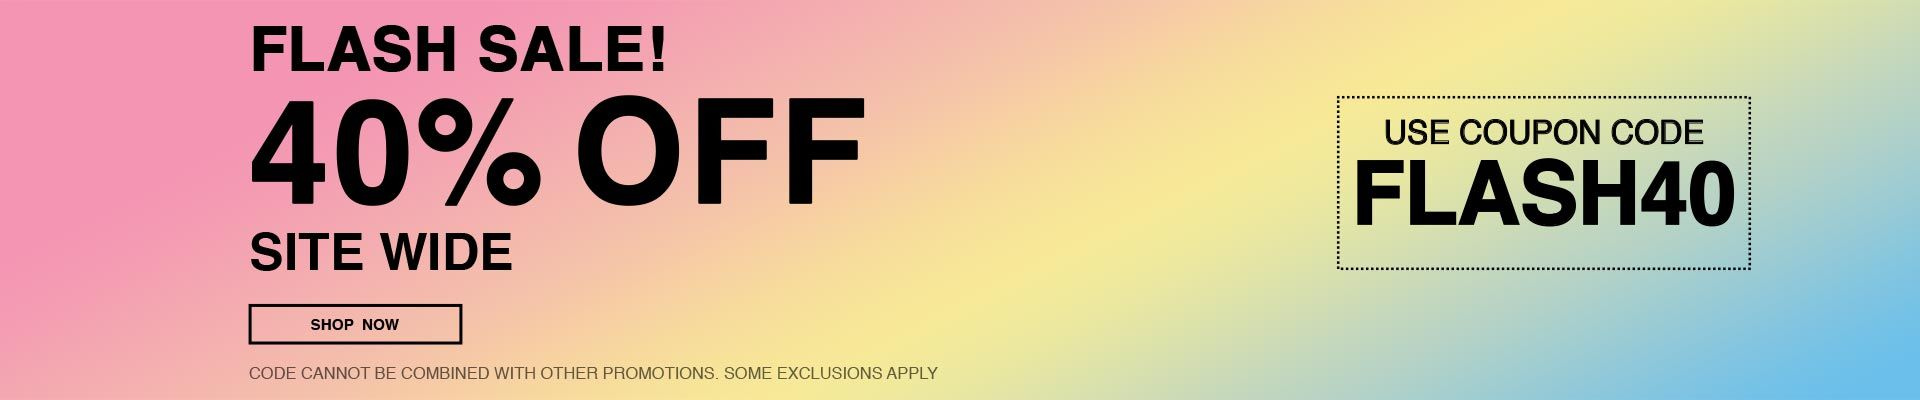 40% Off Site Wide - Use Code FLASH40